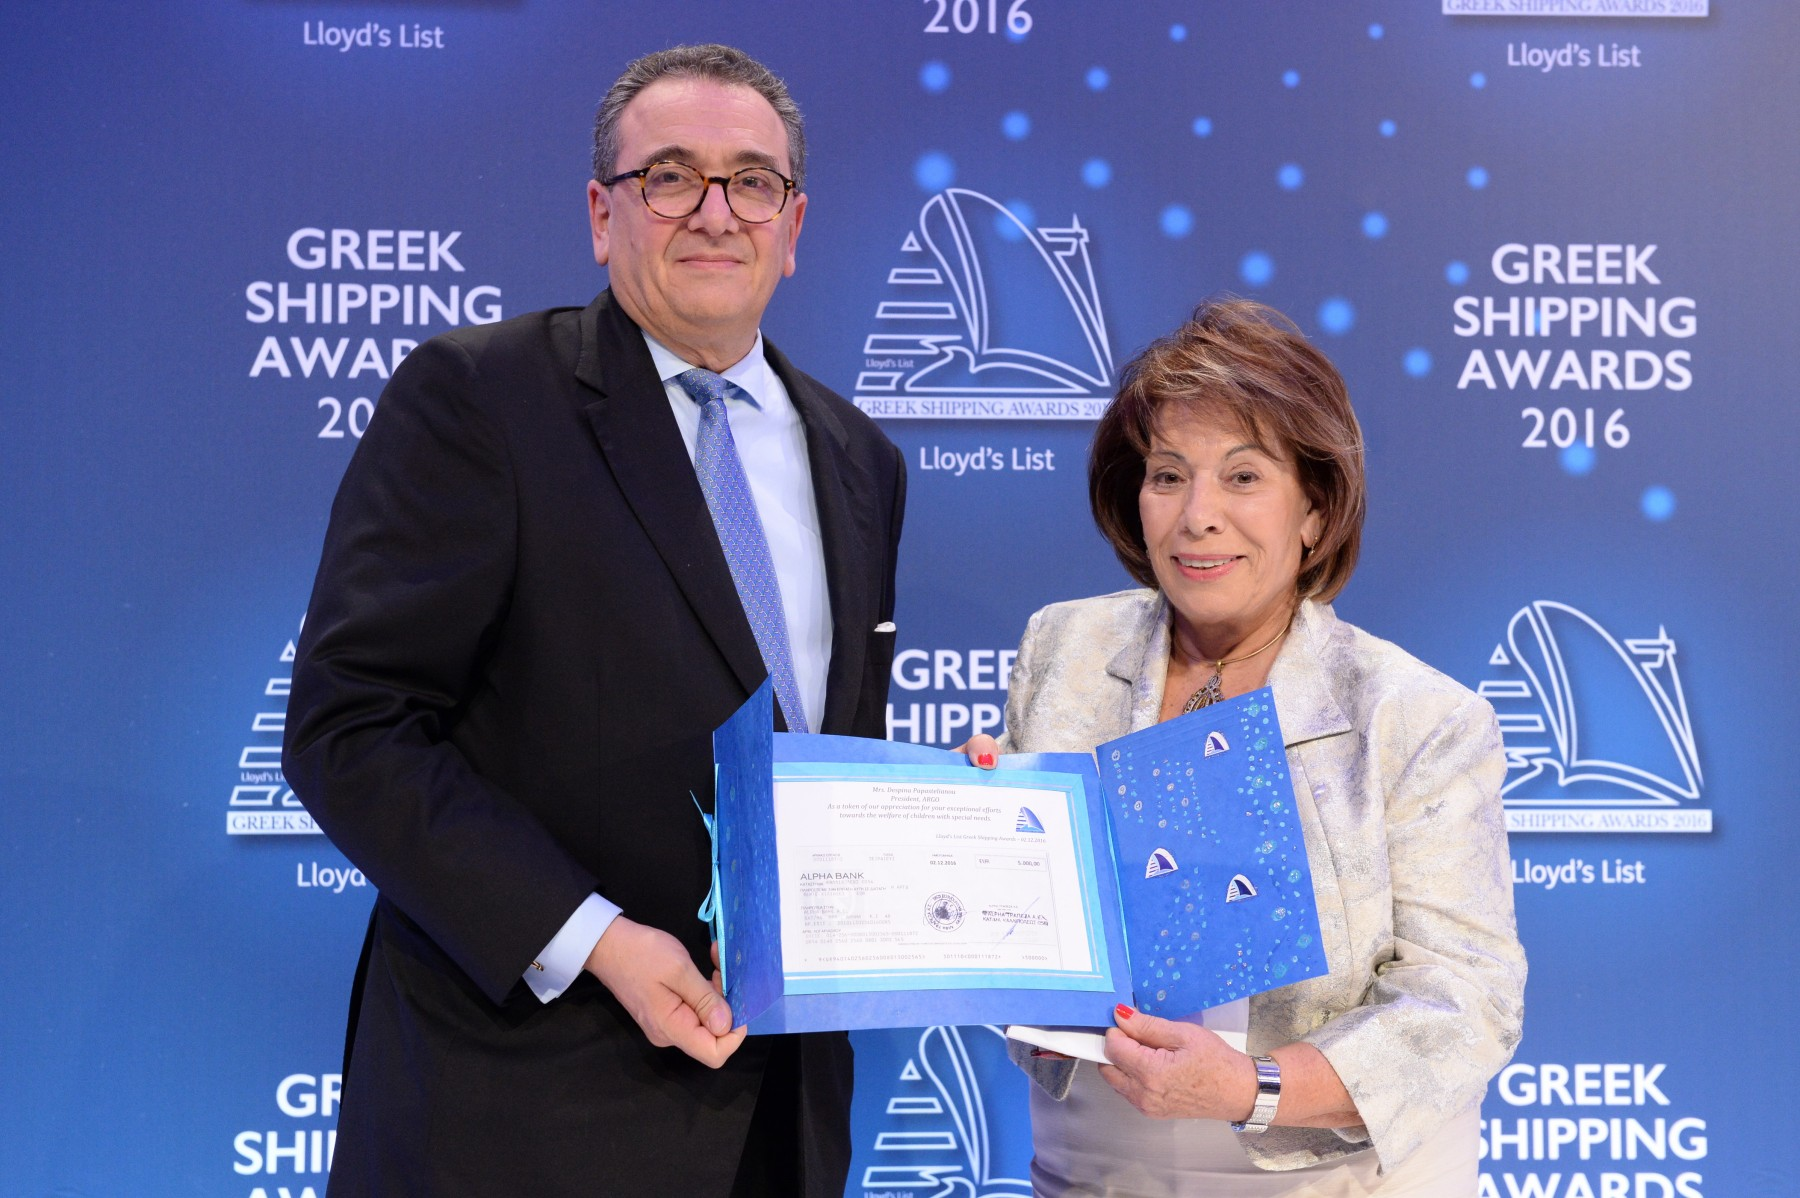 Mr. George D. Pateras of the Hellenic Chamber of Shipping presenting the Lloyd's List Greek Shipping Awards annual donation to ARGO, accepted by Mrs. Despina Papastelianou